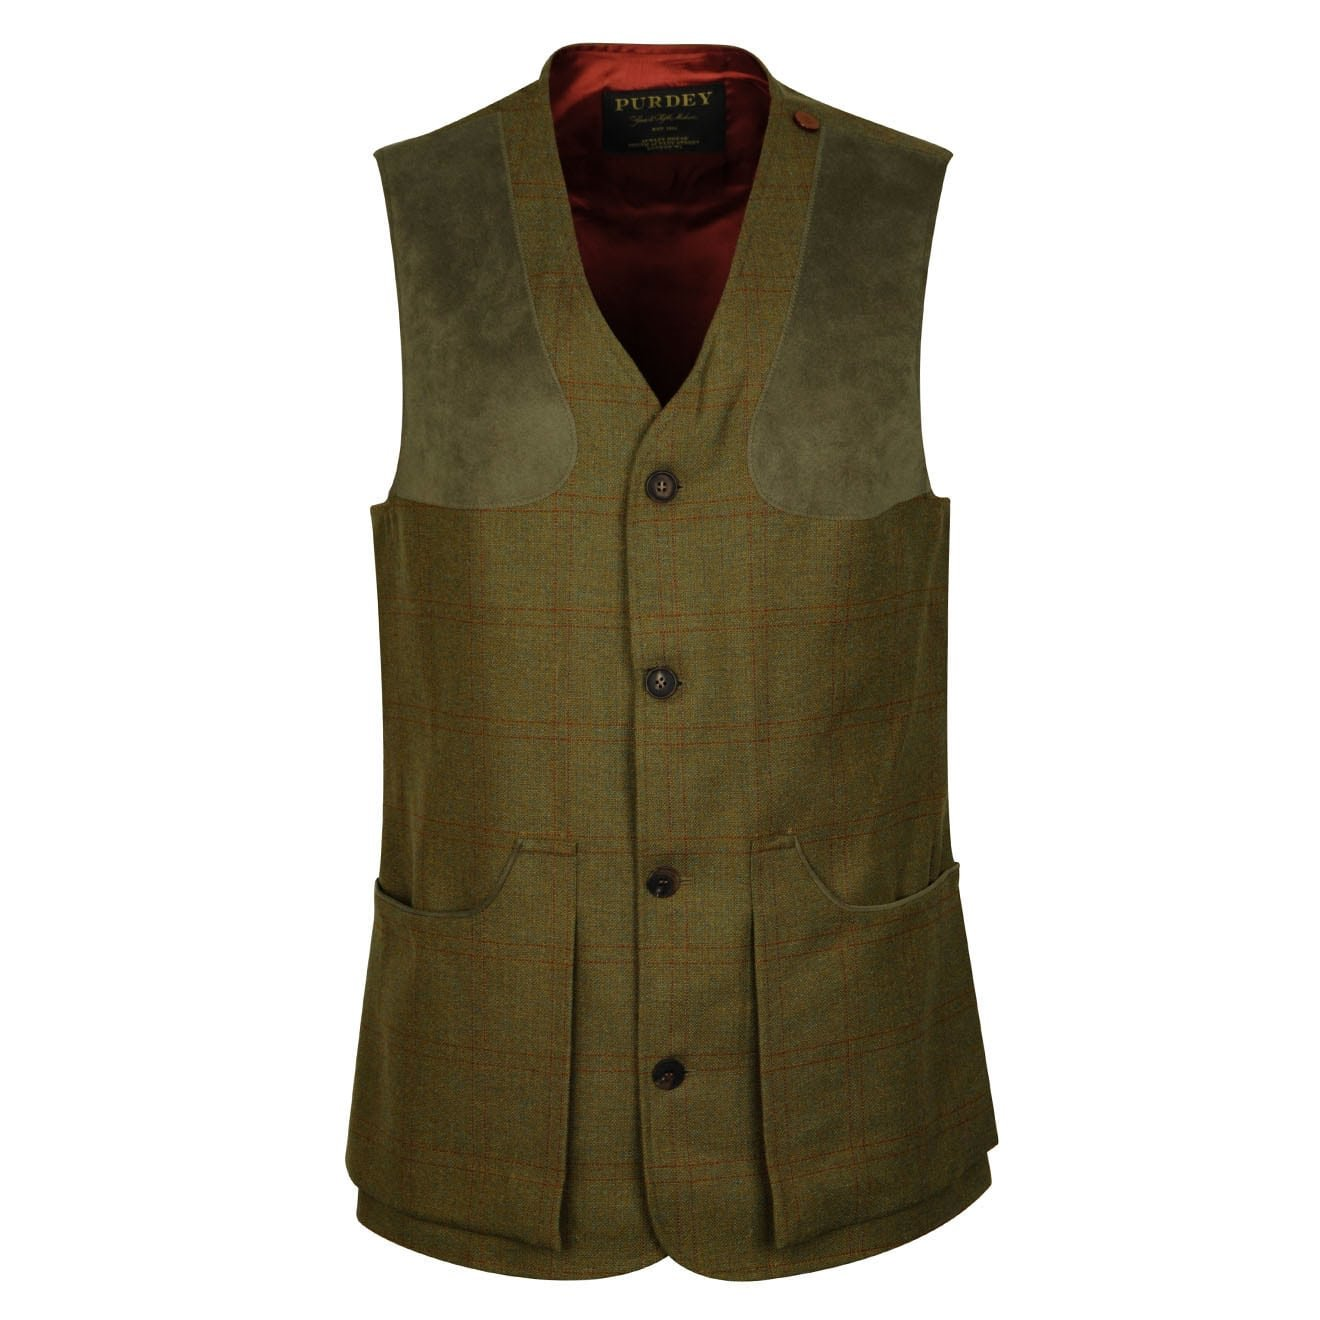 f79d2abf0a82a James Purdey Technical Tweed Shooting Vest Bembridge - The Sporting ...